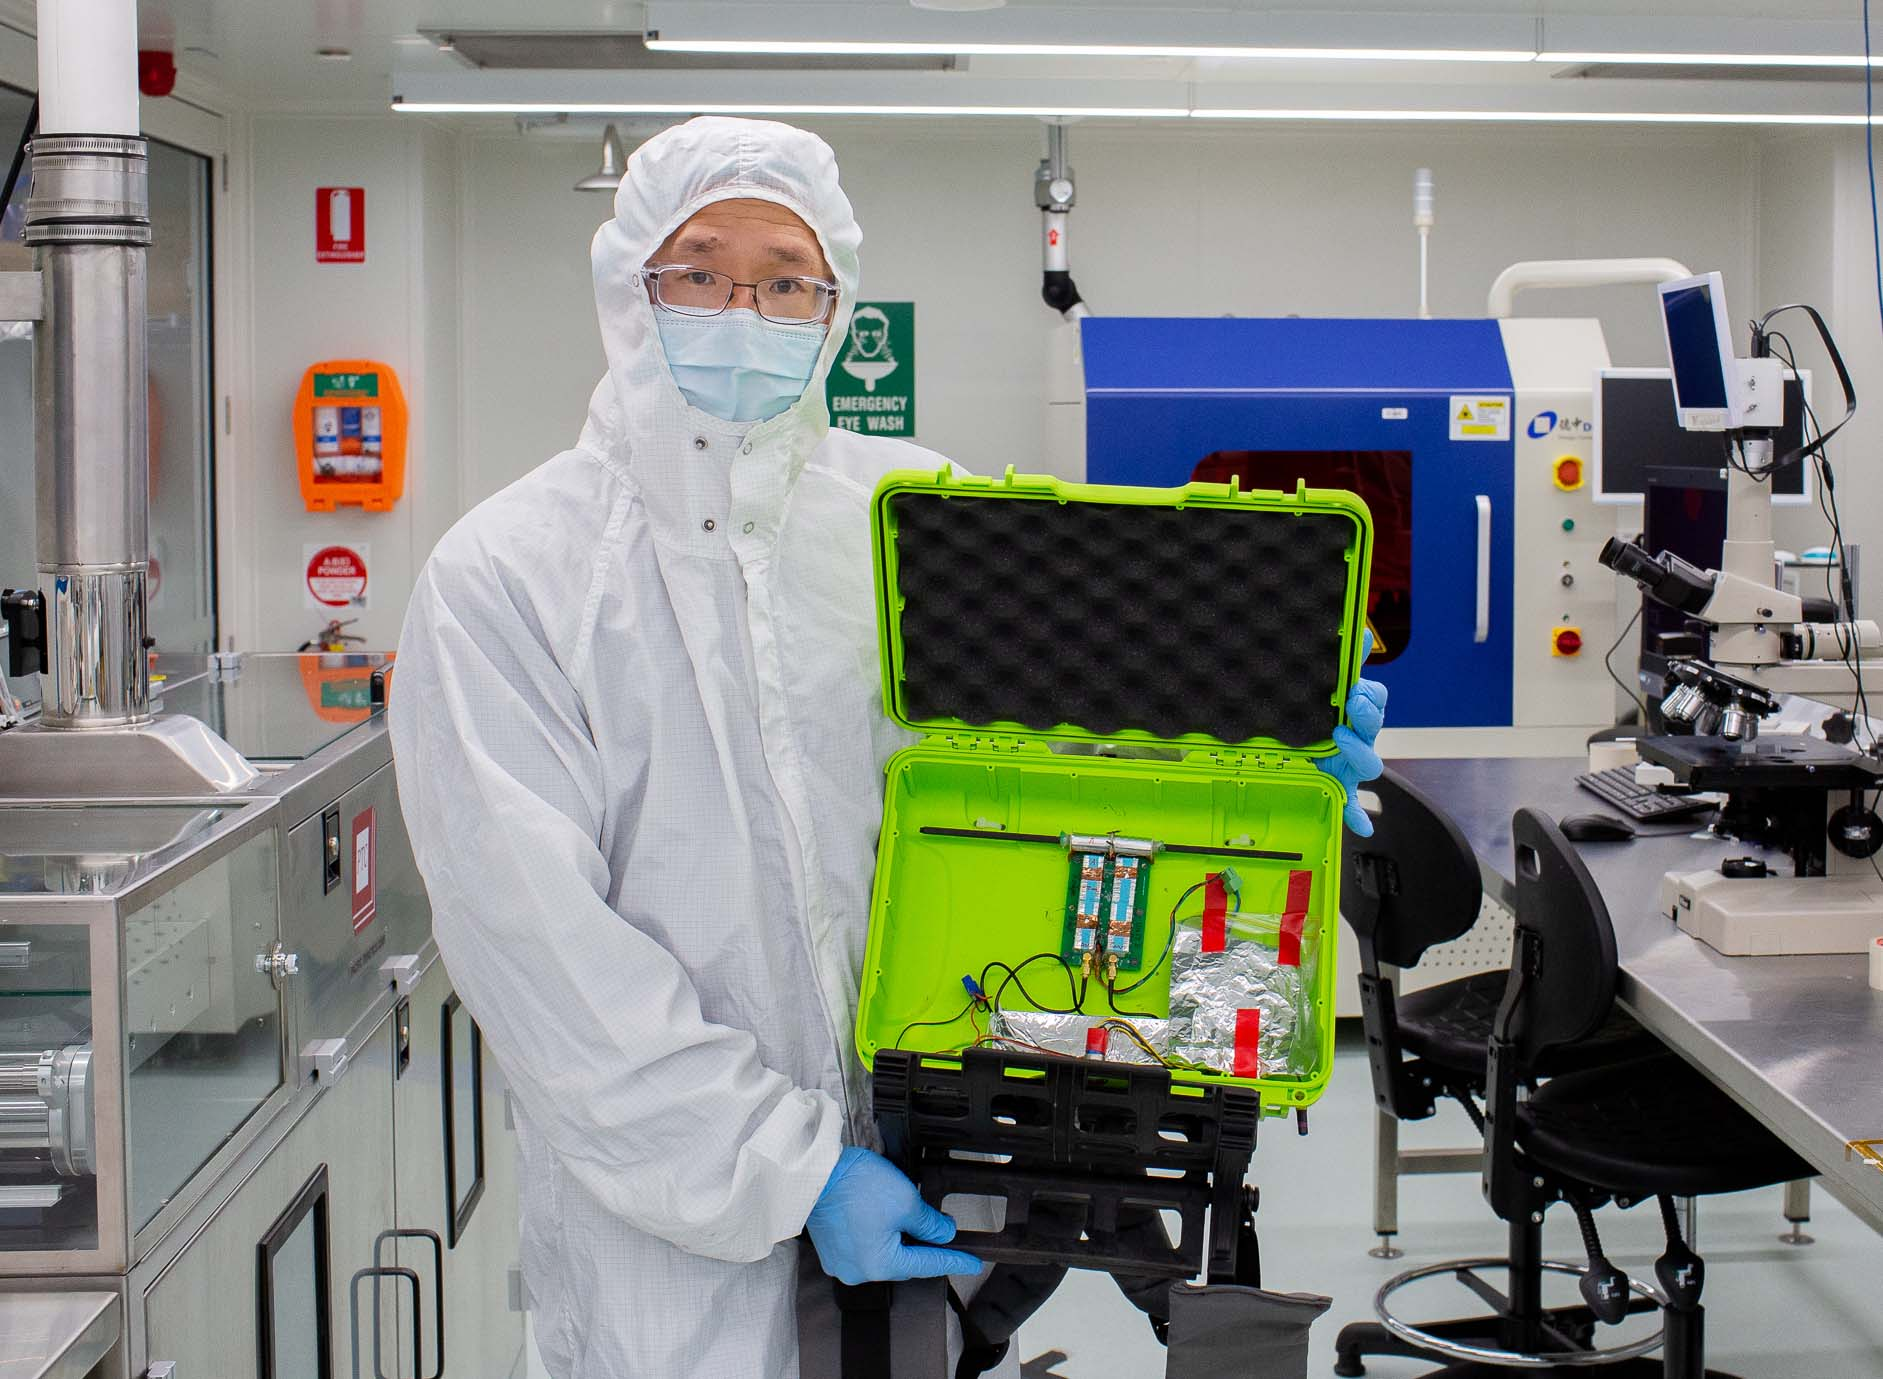 Lab technician holds MAPrad prototype in the Micro Nano Research Facility clean rooms at RMIT.